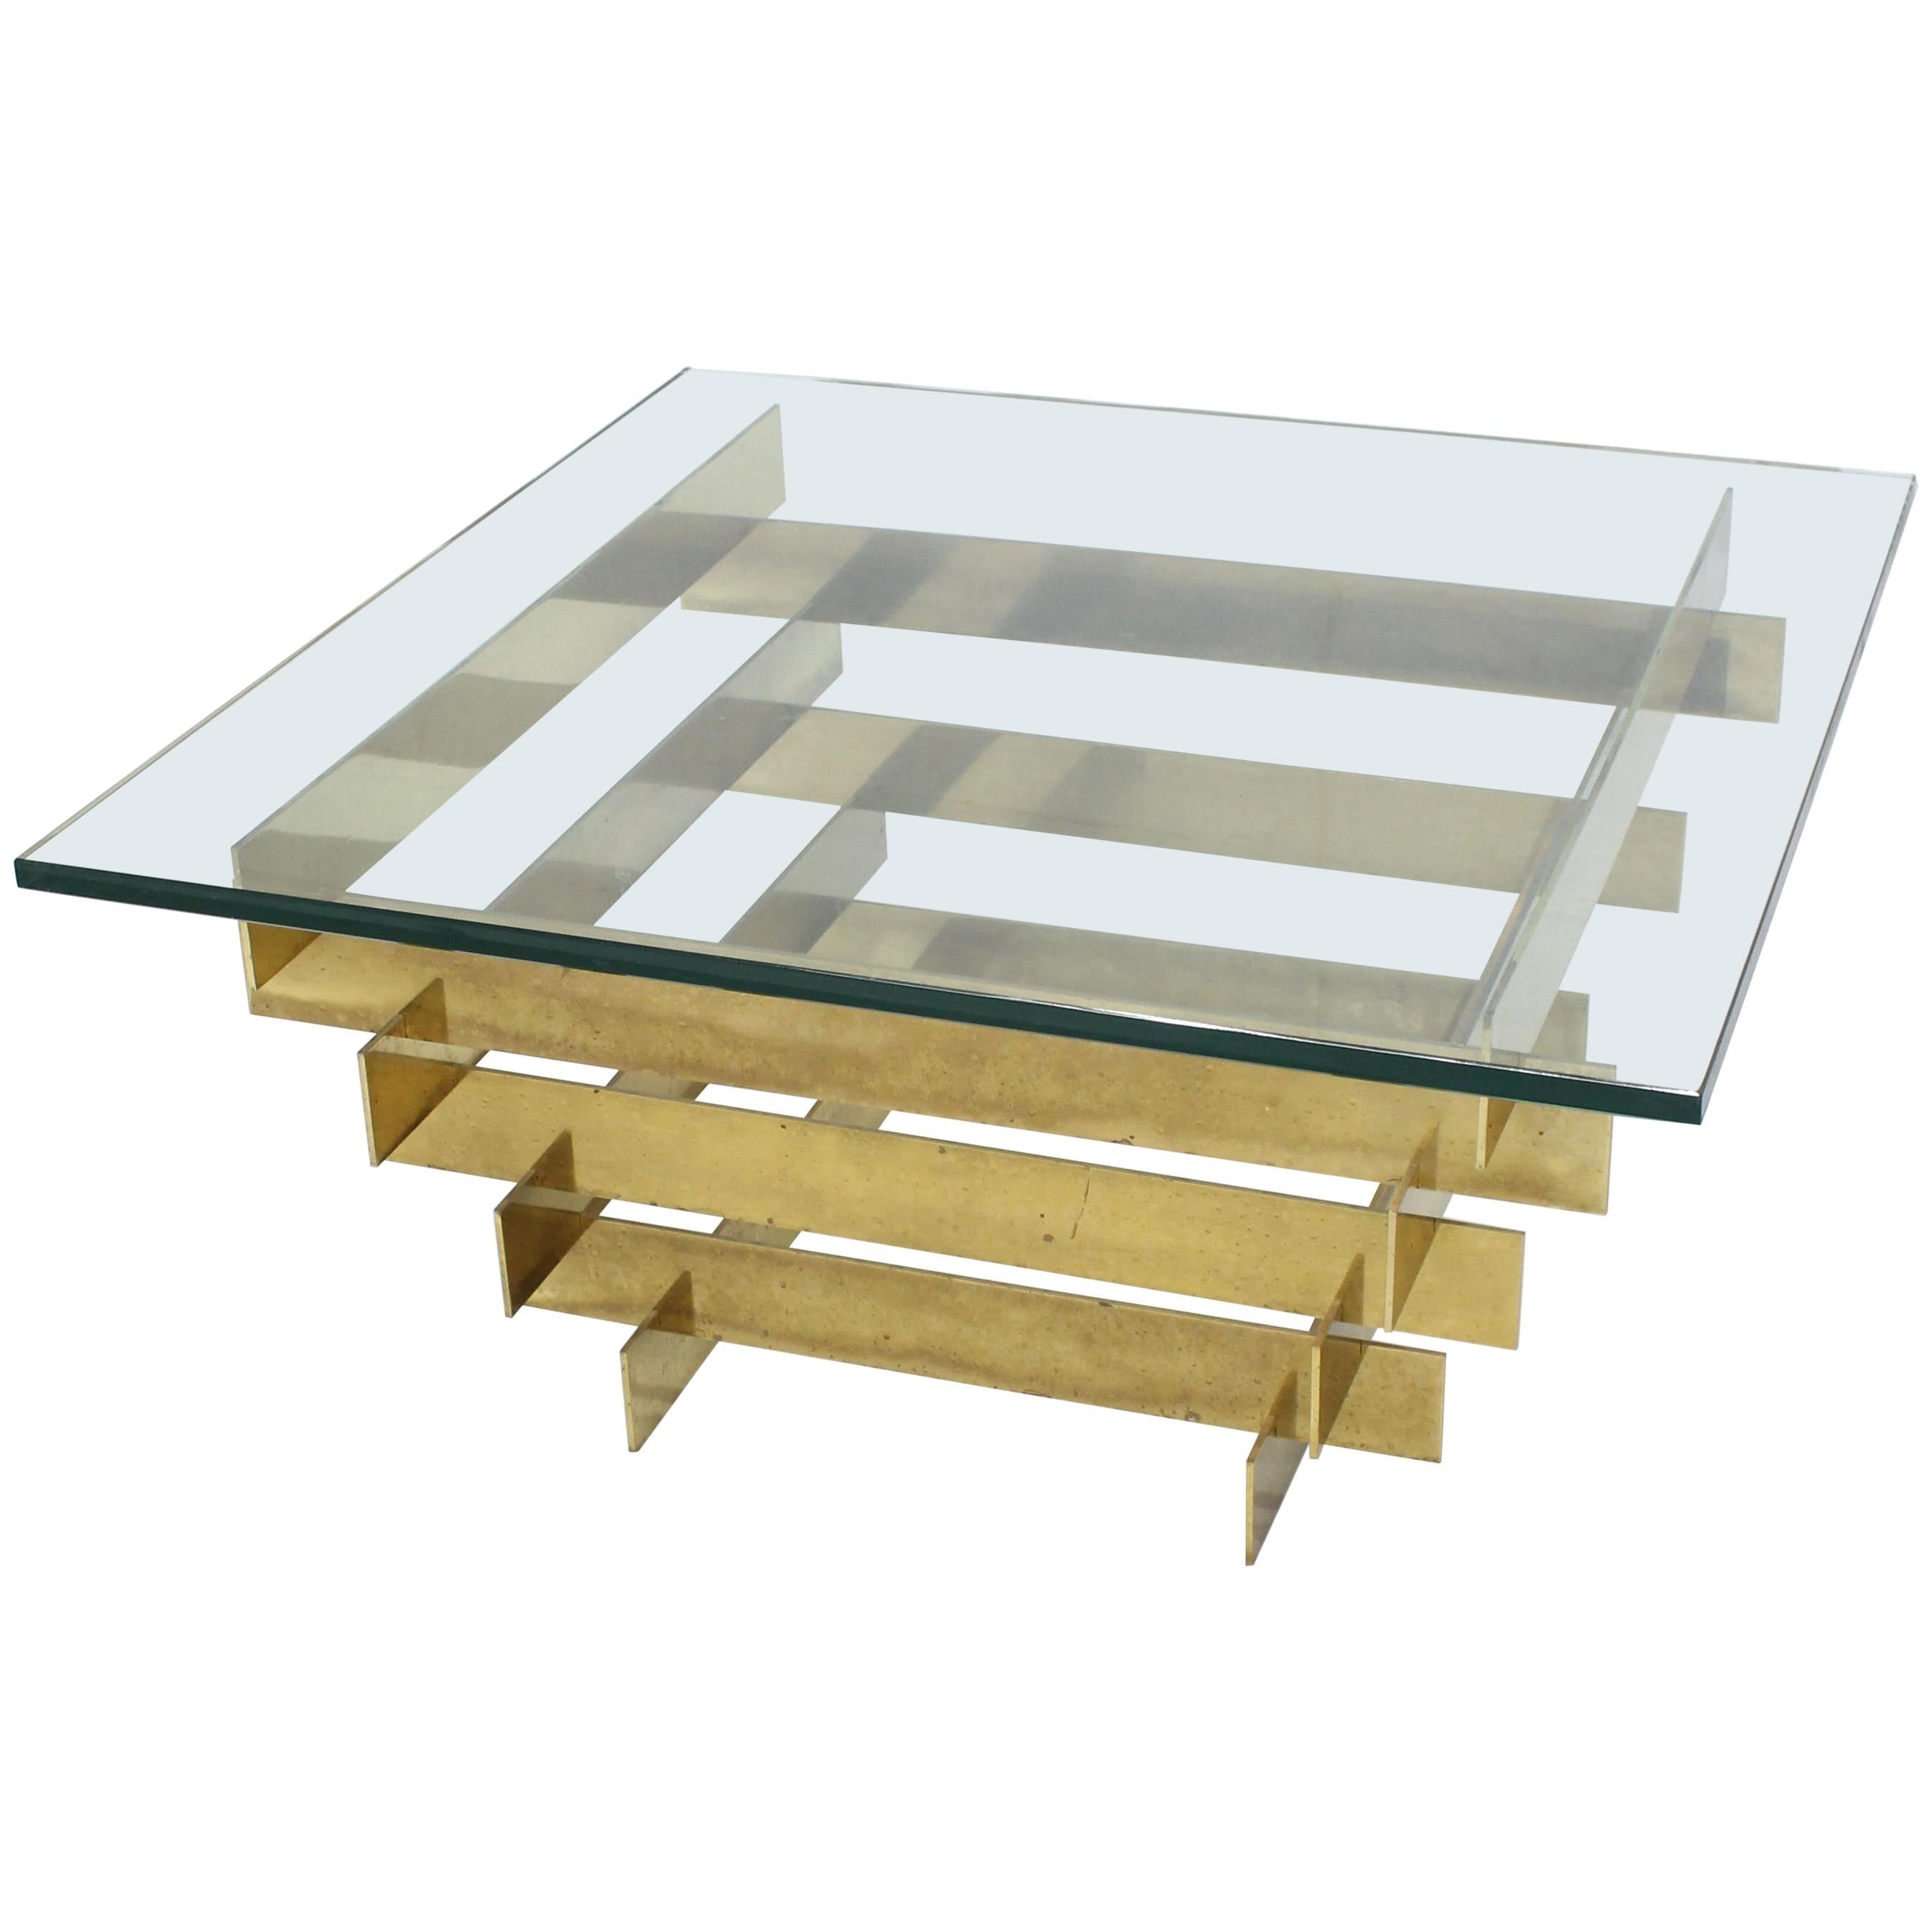 Bronze Base Glass Top Mid-Century Modern Square Coffee Table